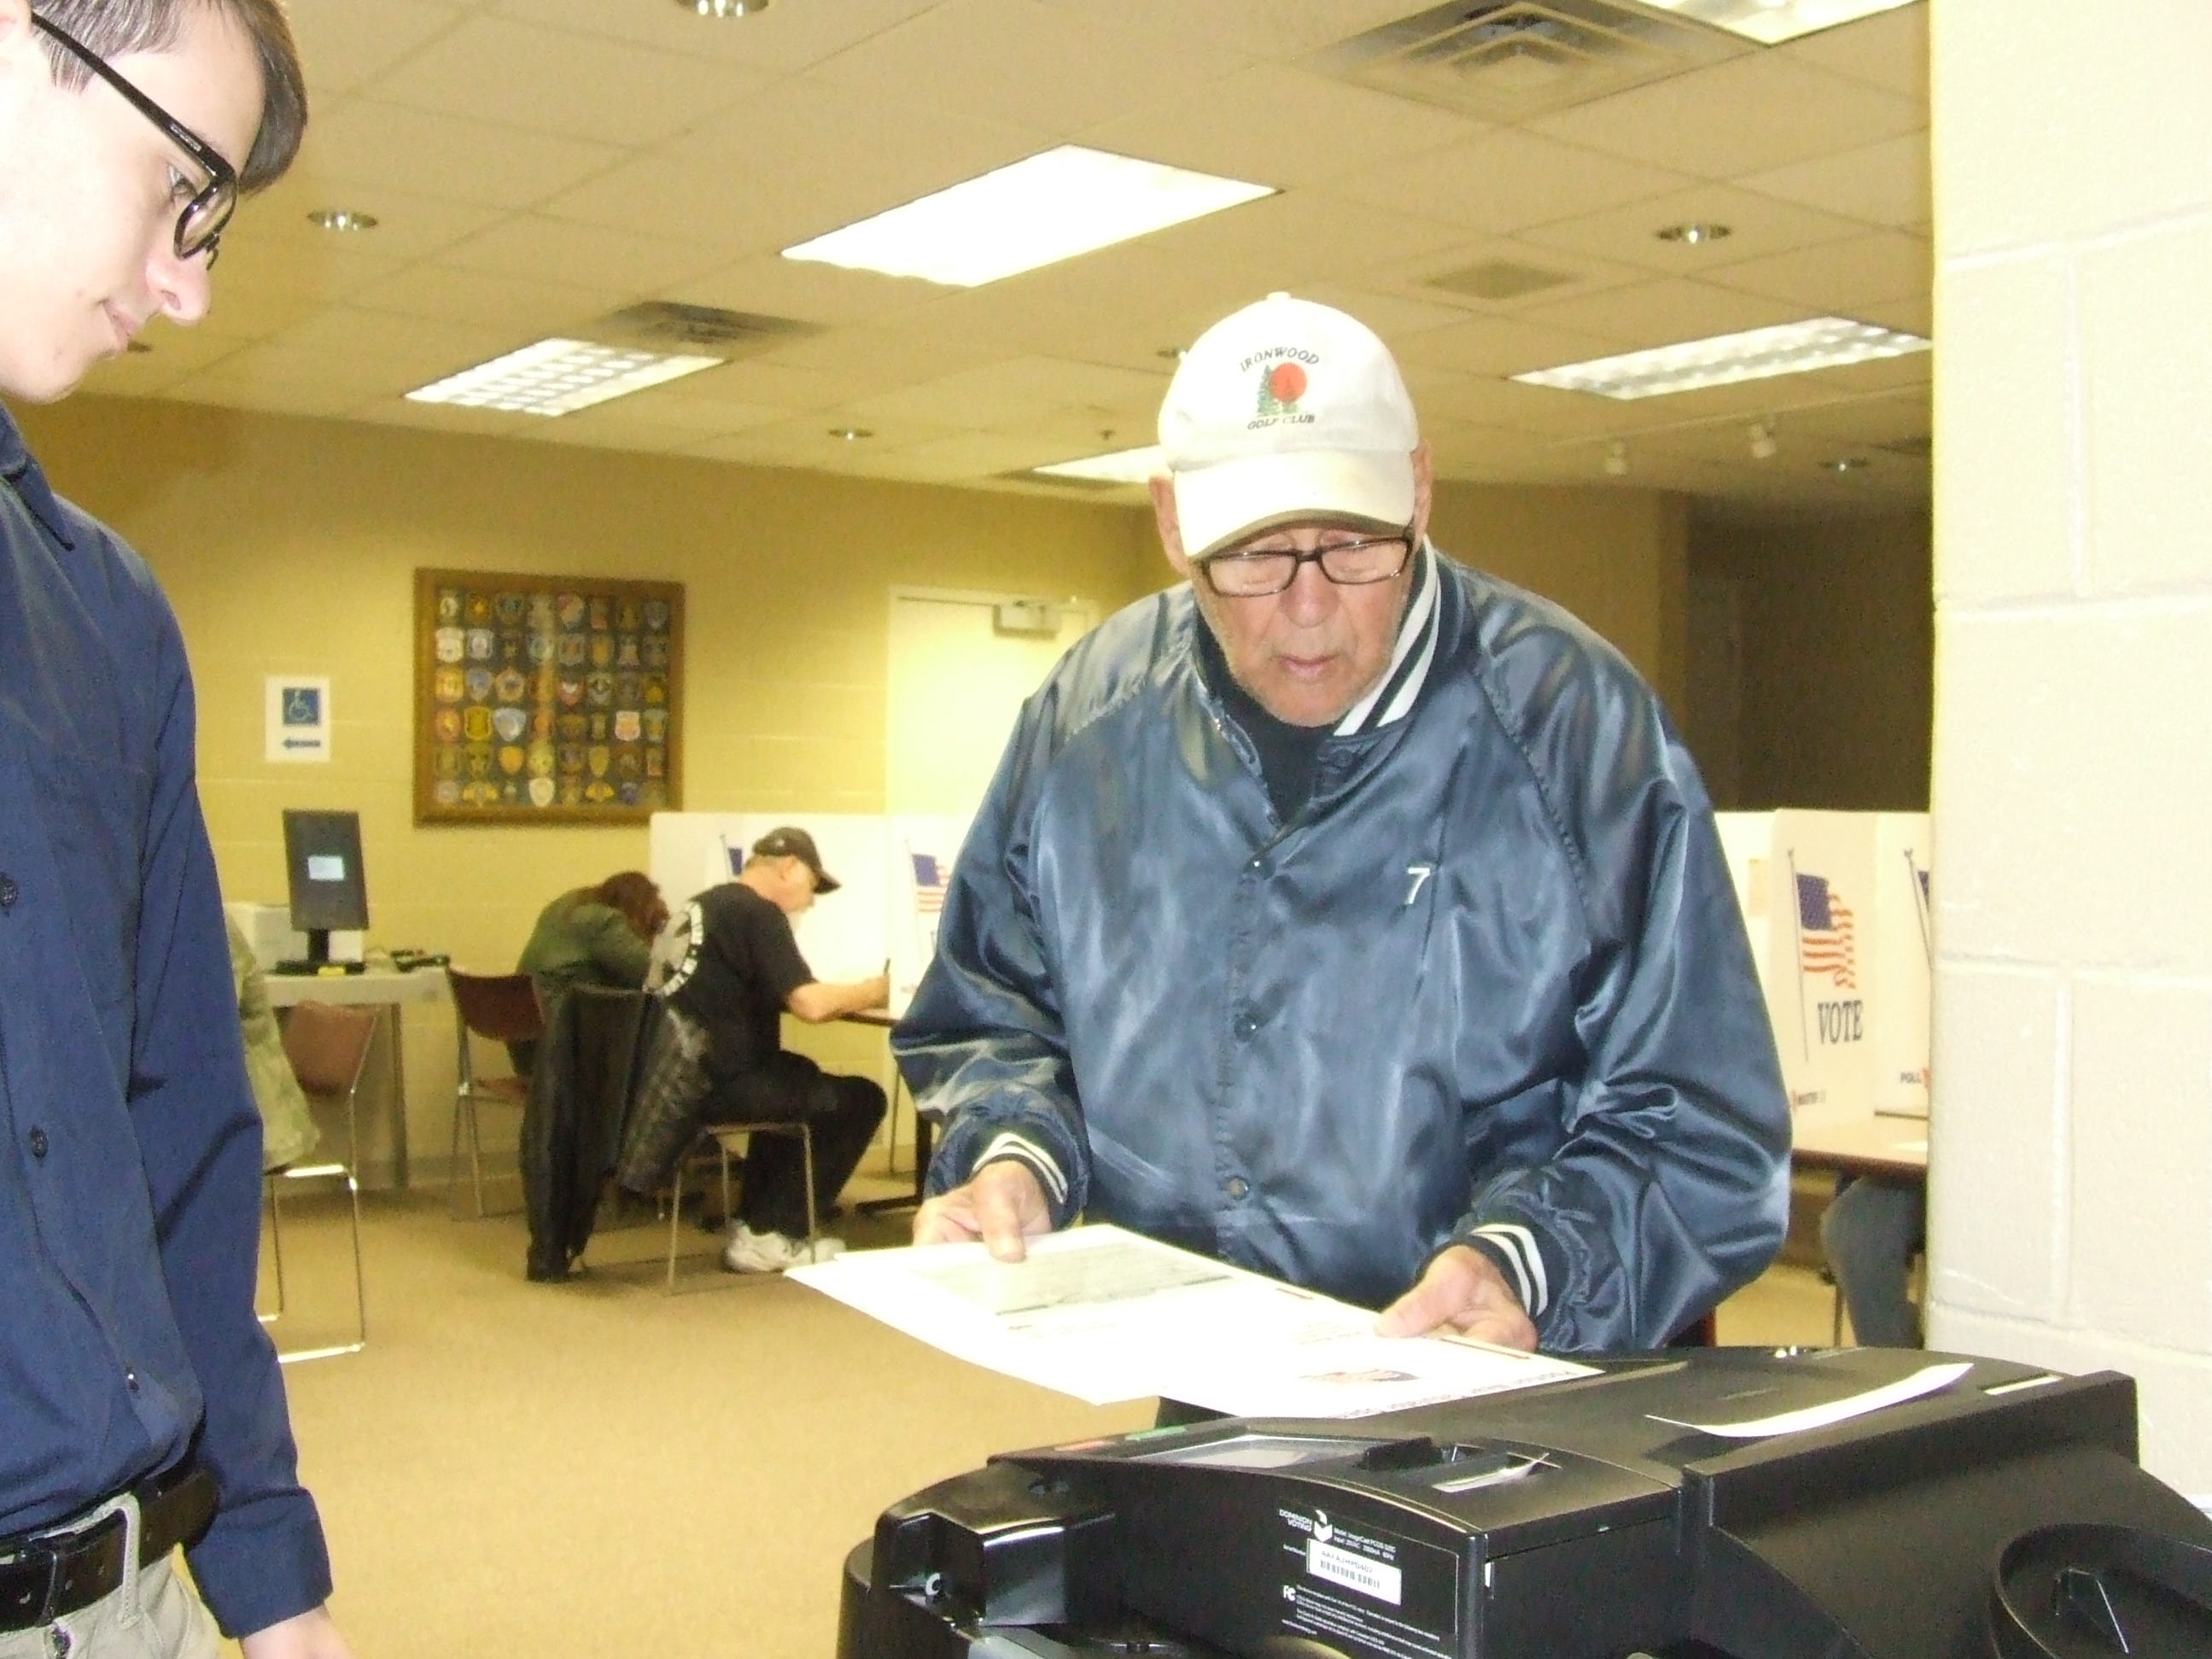 Robert Houff of Garden City feeds his ballot into the counting machine as first-time poll worker Zachary Litwalk looks on. Houff voted in Precinct 9 at the Garden City Police Department.